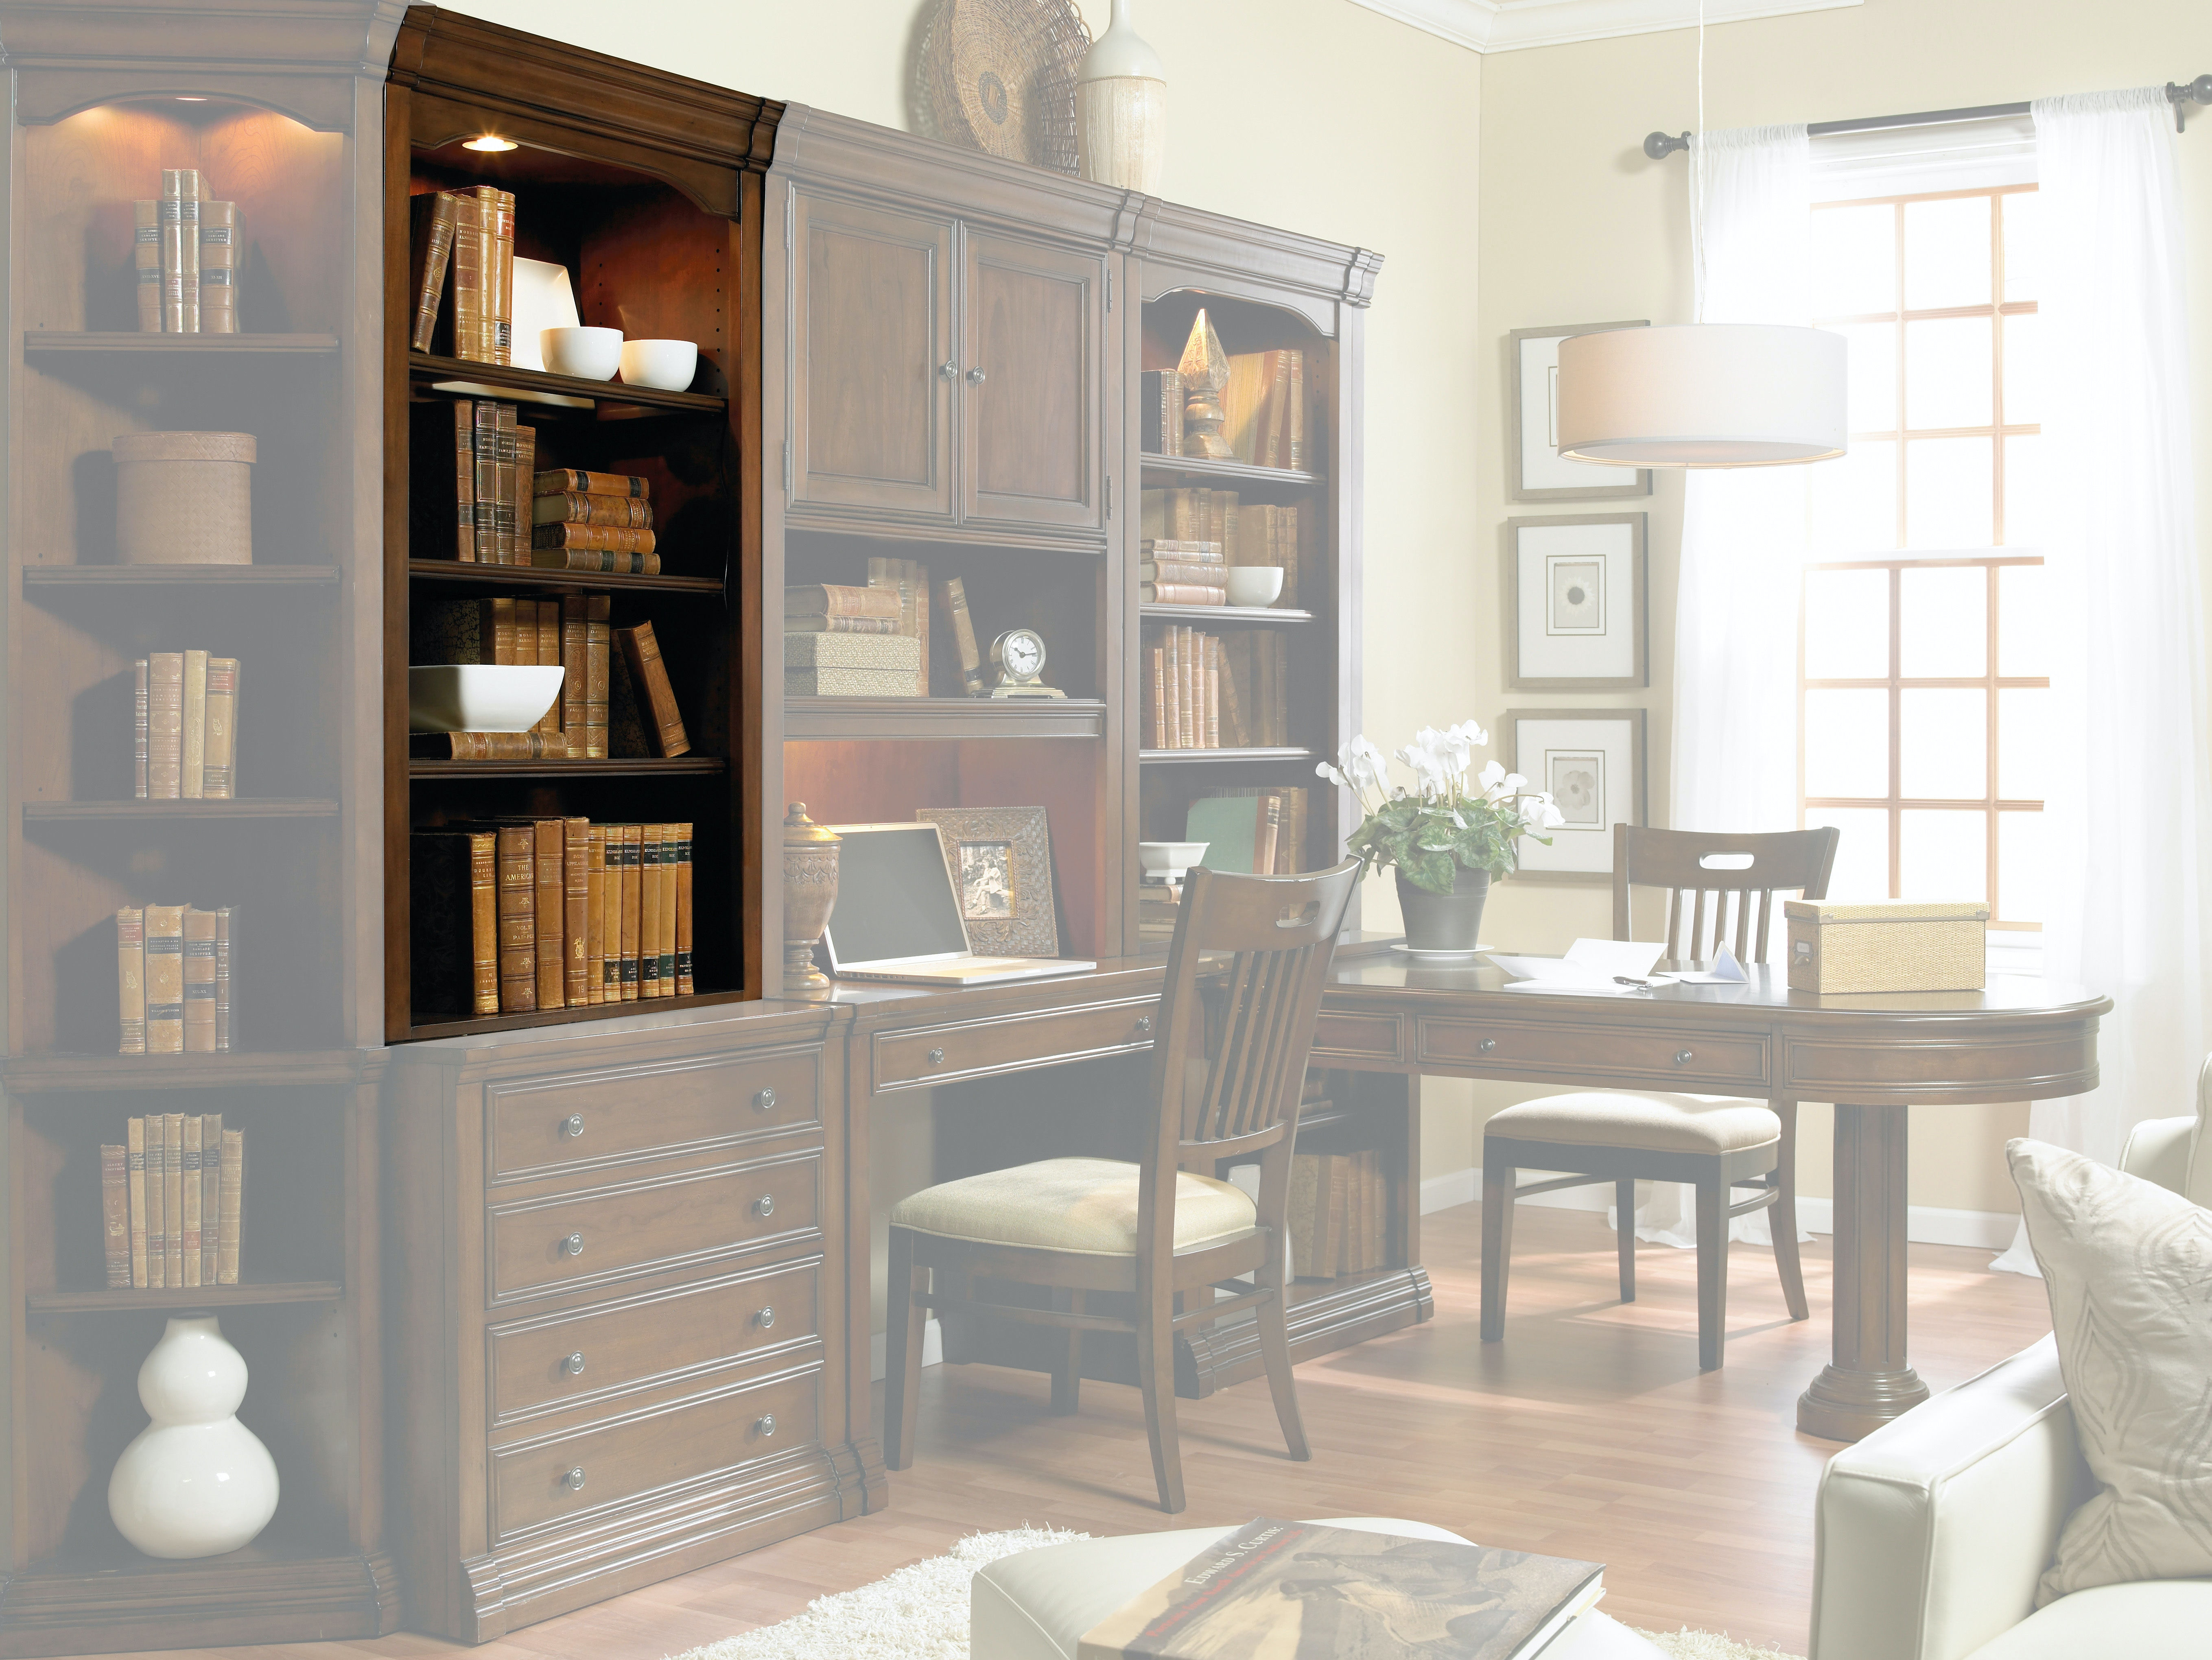 Hooker Furniture Home Office ec592 ch 088 wyatt home office Hooker Furniture Cherry Creek Open Hutch 258 70 417